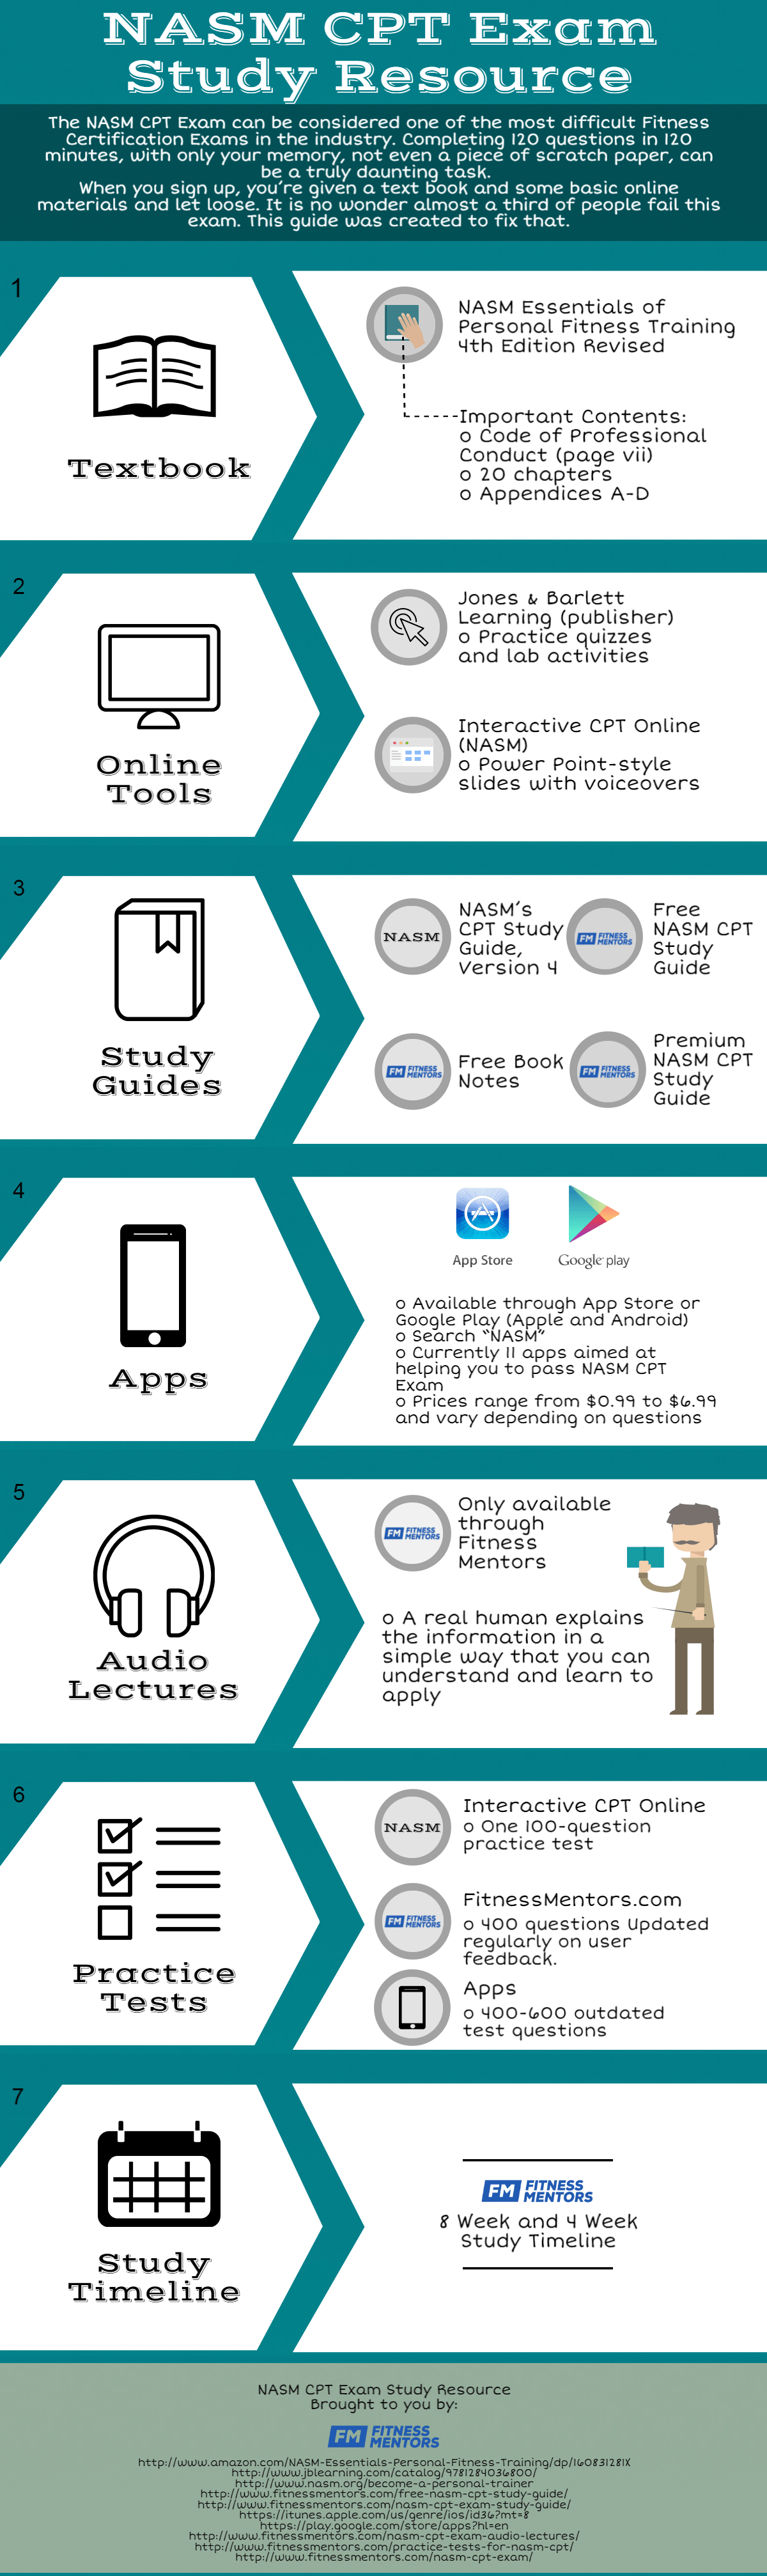 The only nasm cpt exam study resource youll ever need infographic bonus 4 week and 8 week timeline for studying for your nasm cpt exam xflitez Images